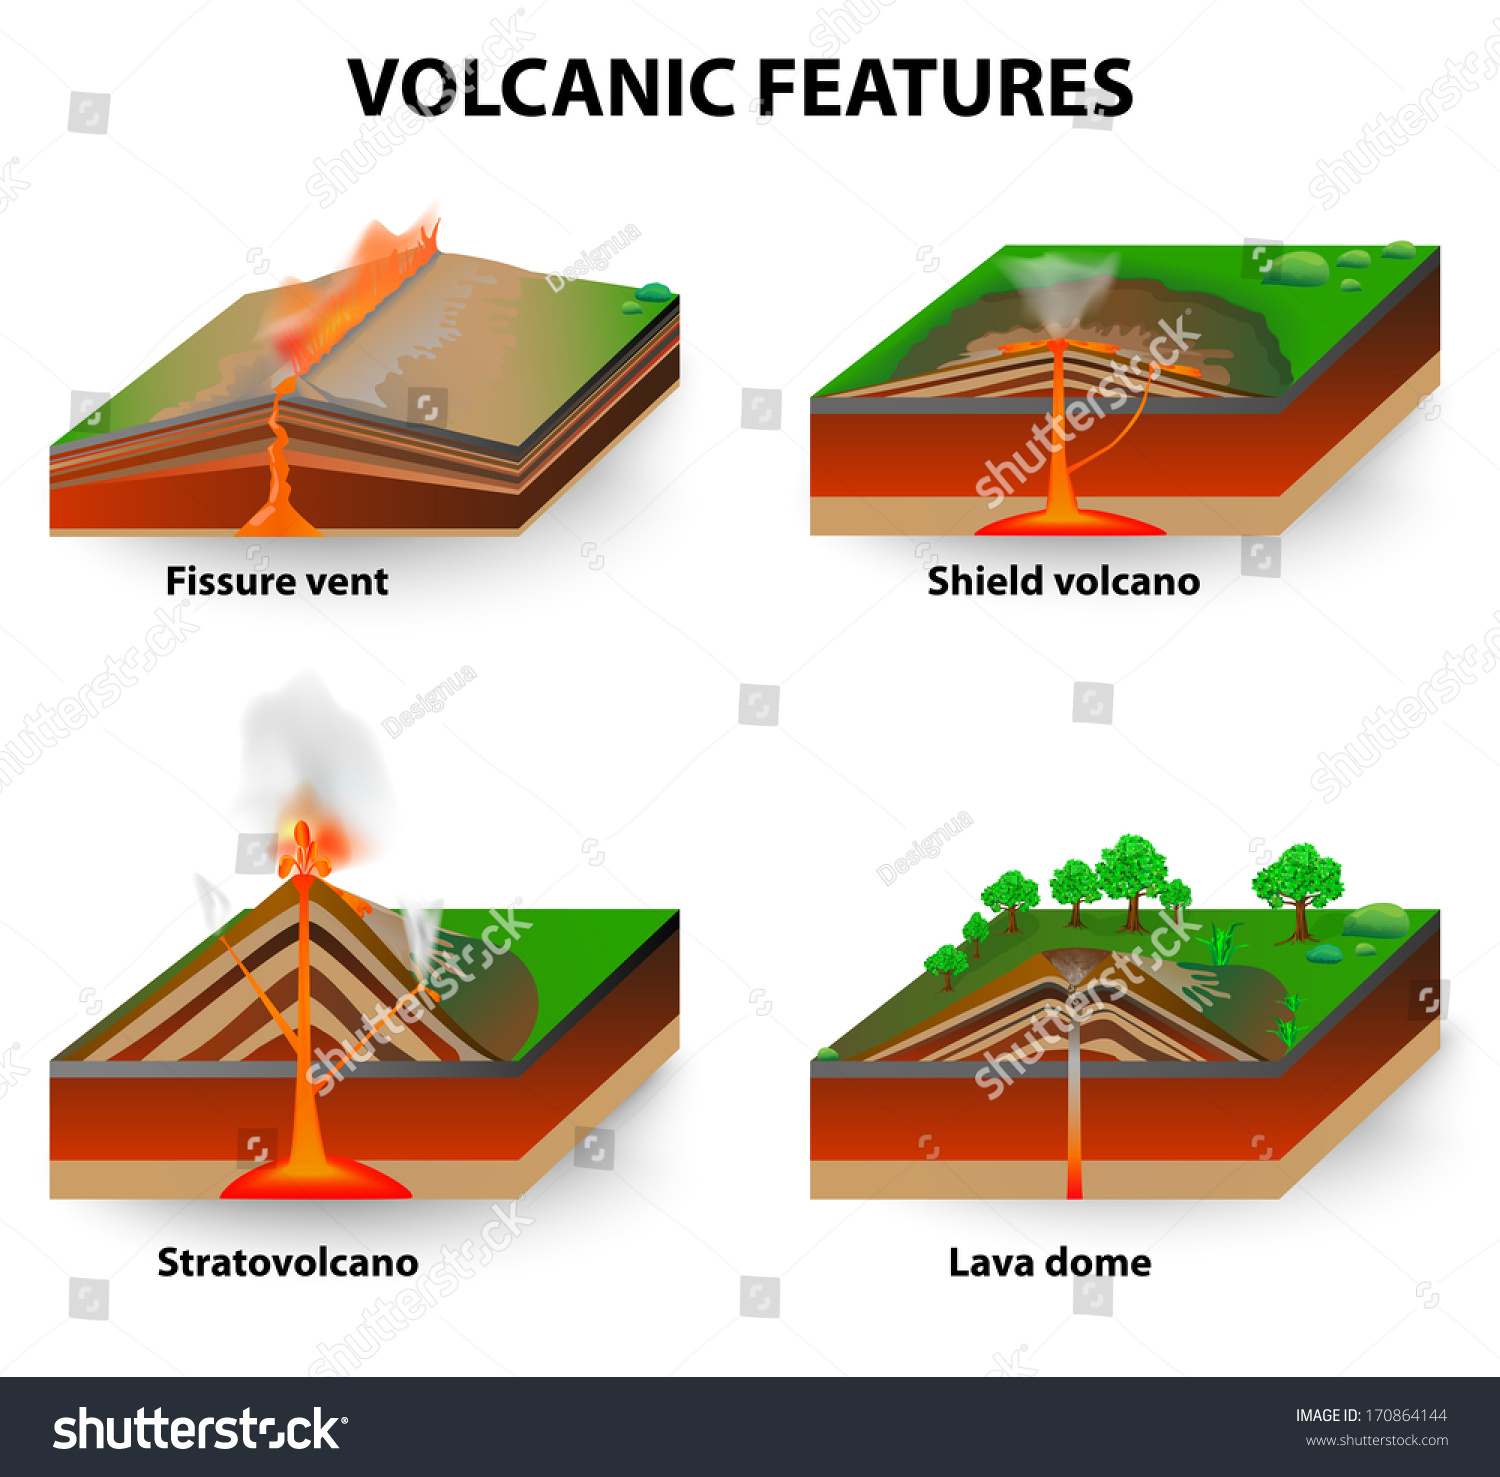 Volcanic features fissure vents shield volcanoes stock illustration fissure vents shield volcanoes lava domes and stratovolcano diagram ccuart Images